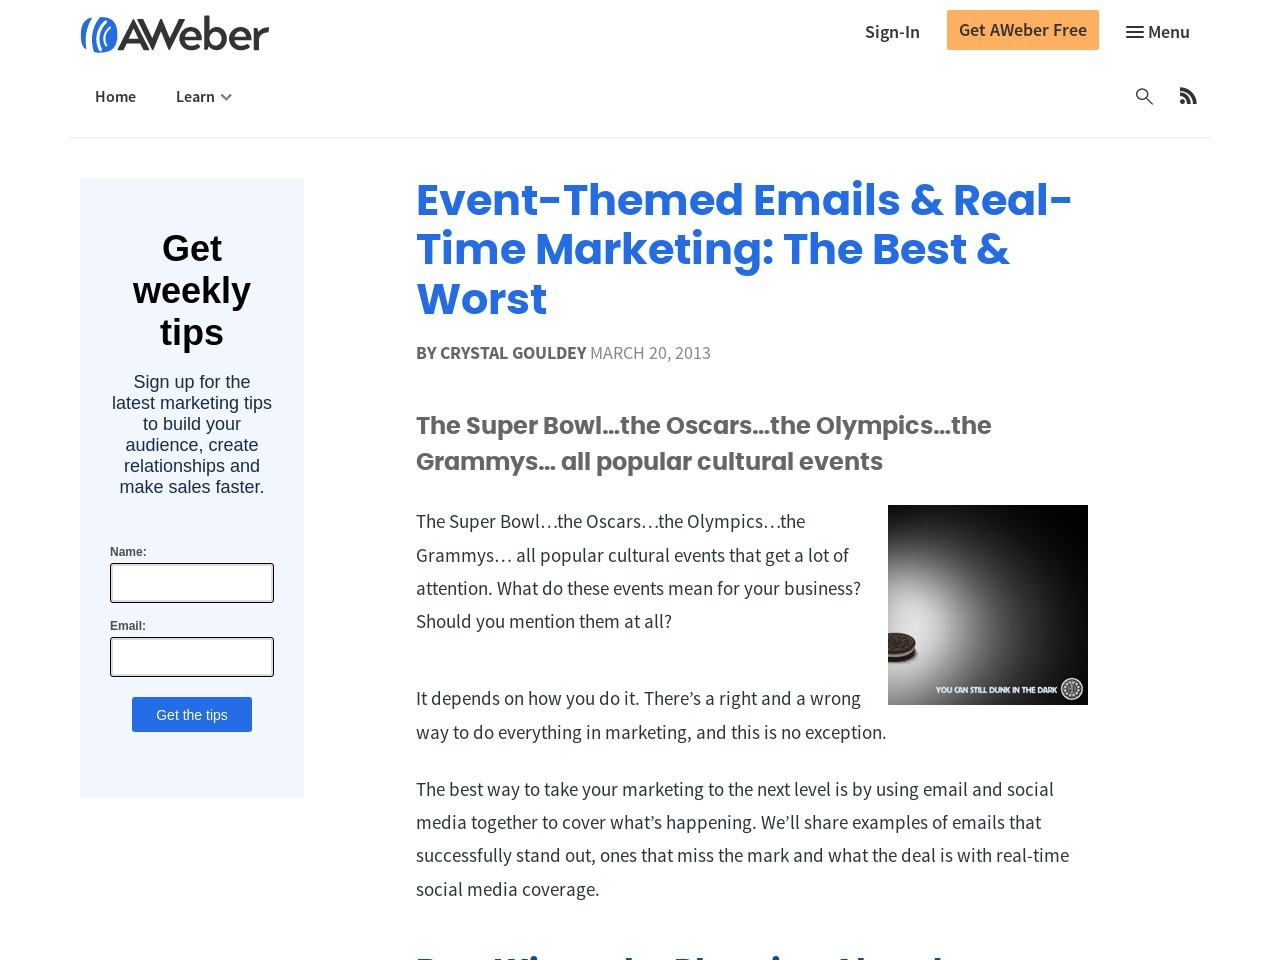 Event-Themed Emails & Real-Time Marketing: The Best & Worst